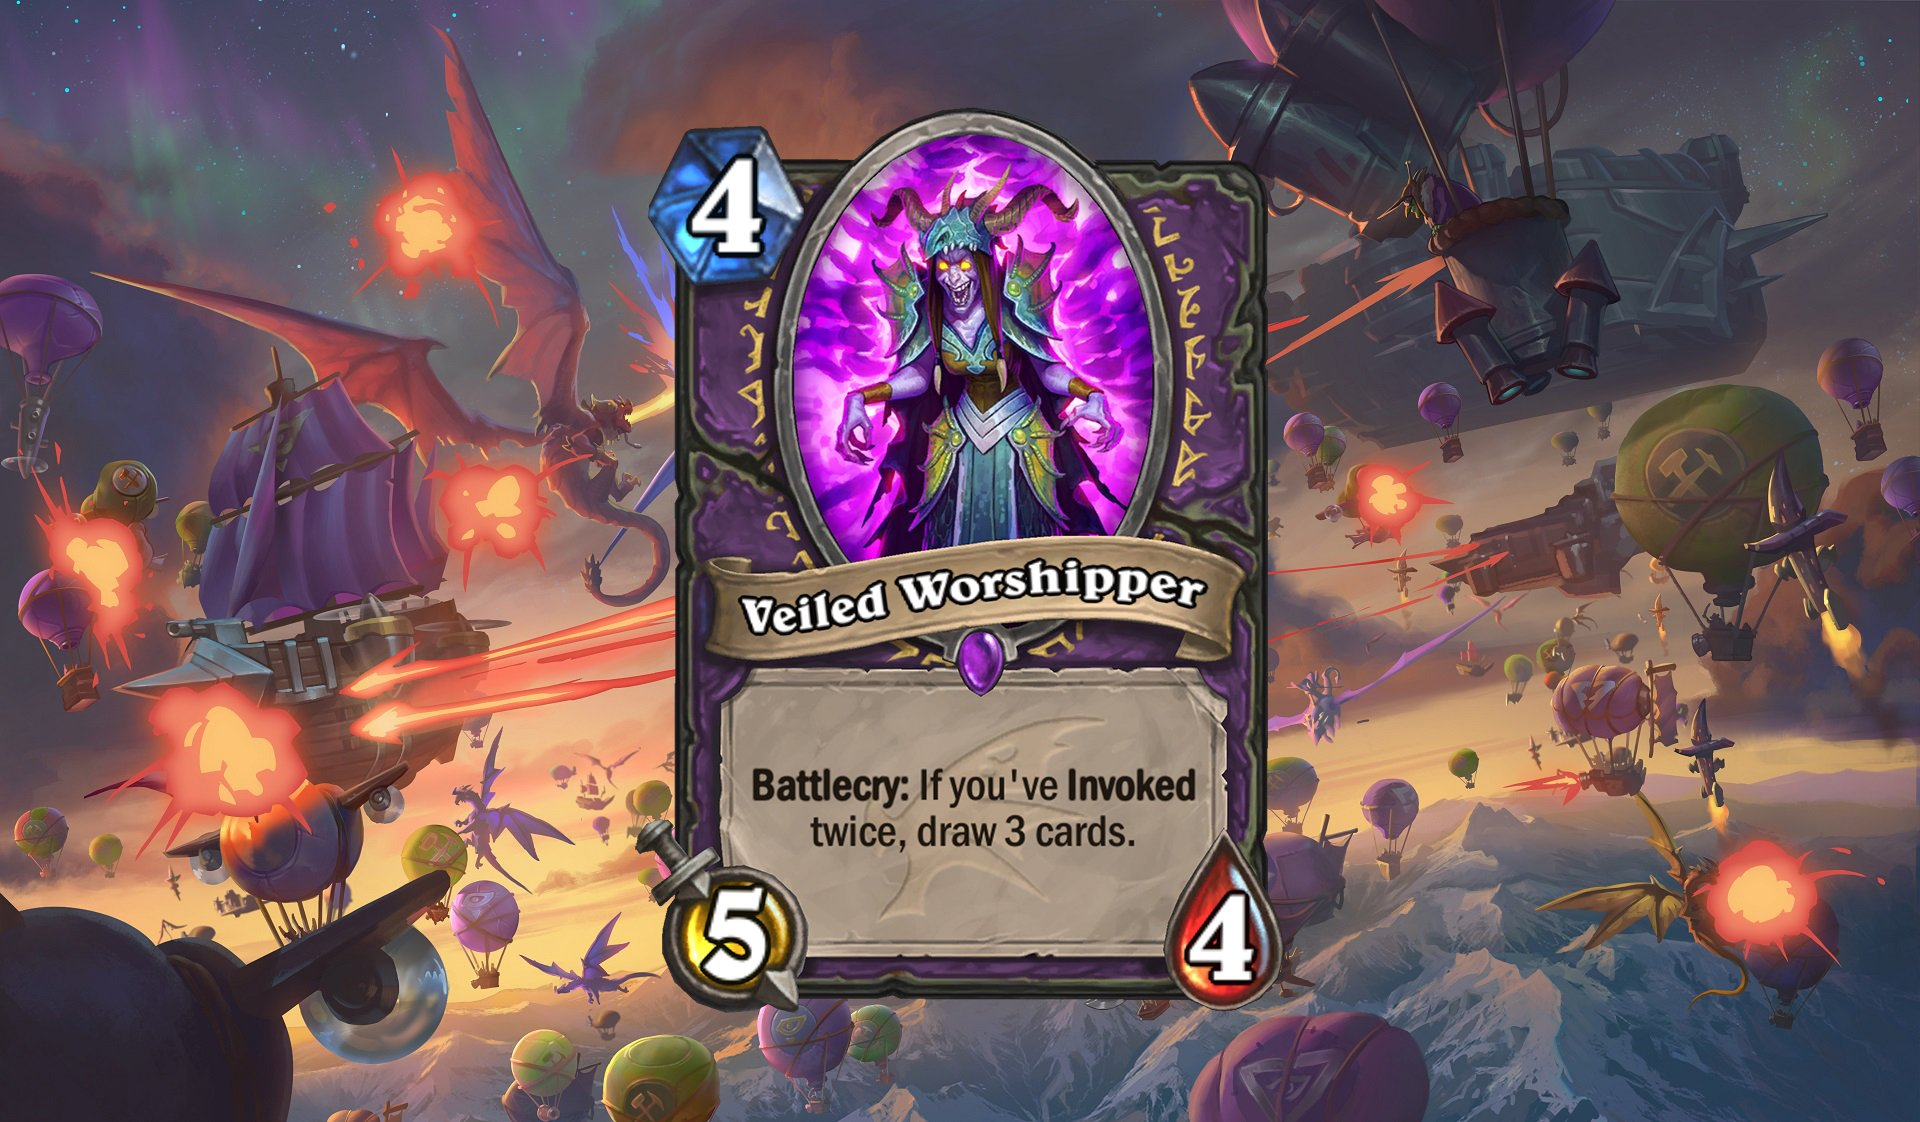 Hearthstone - Veiled Worshipper